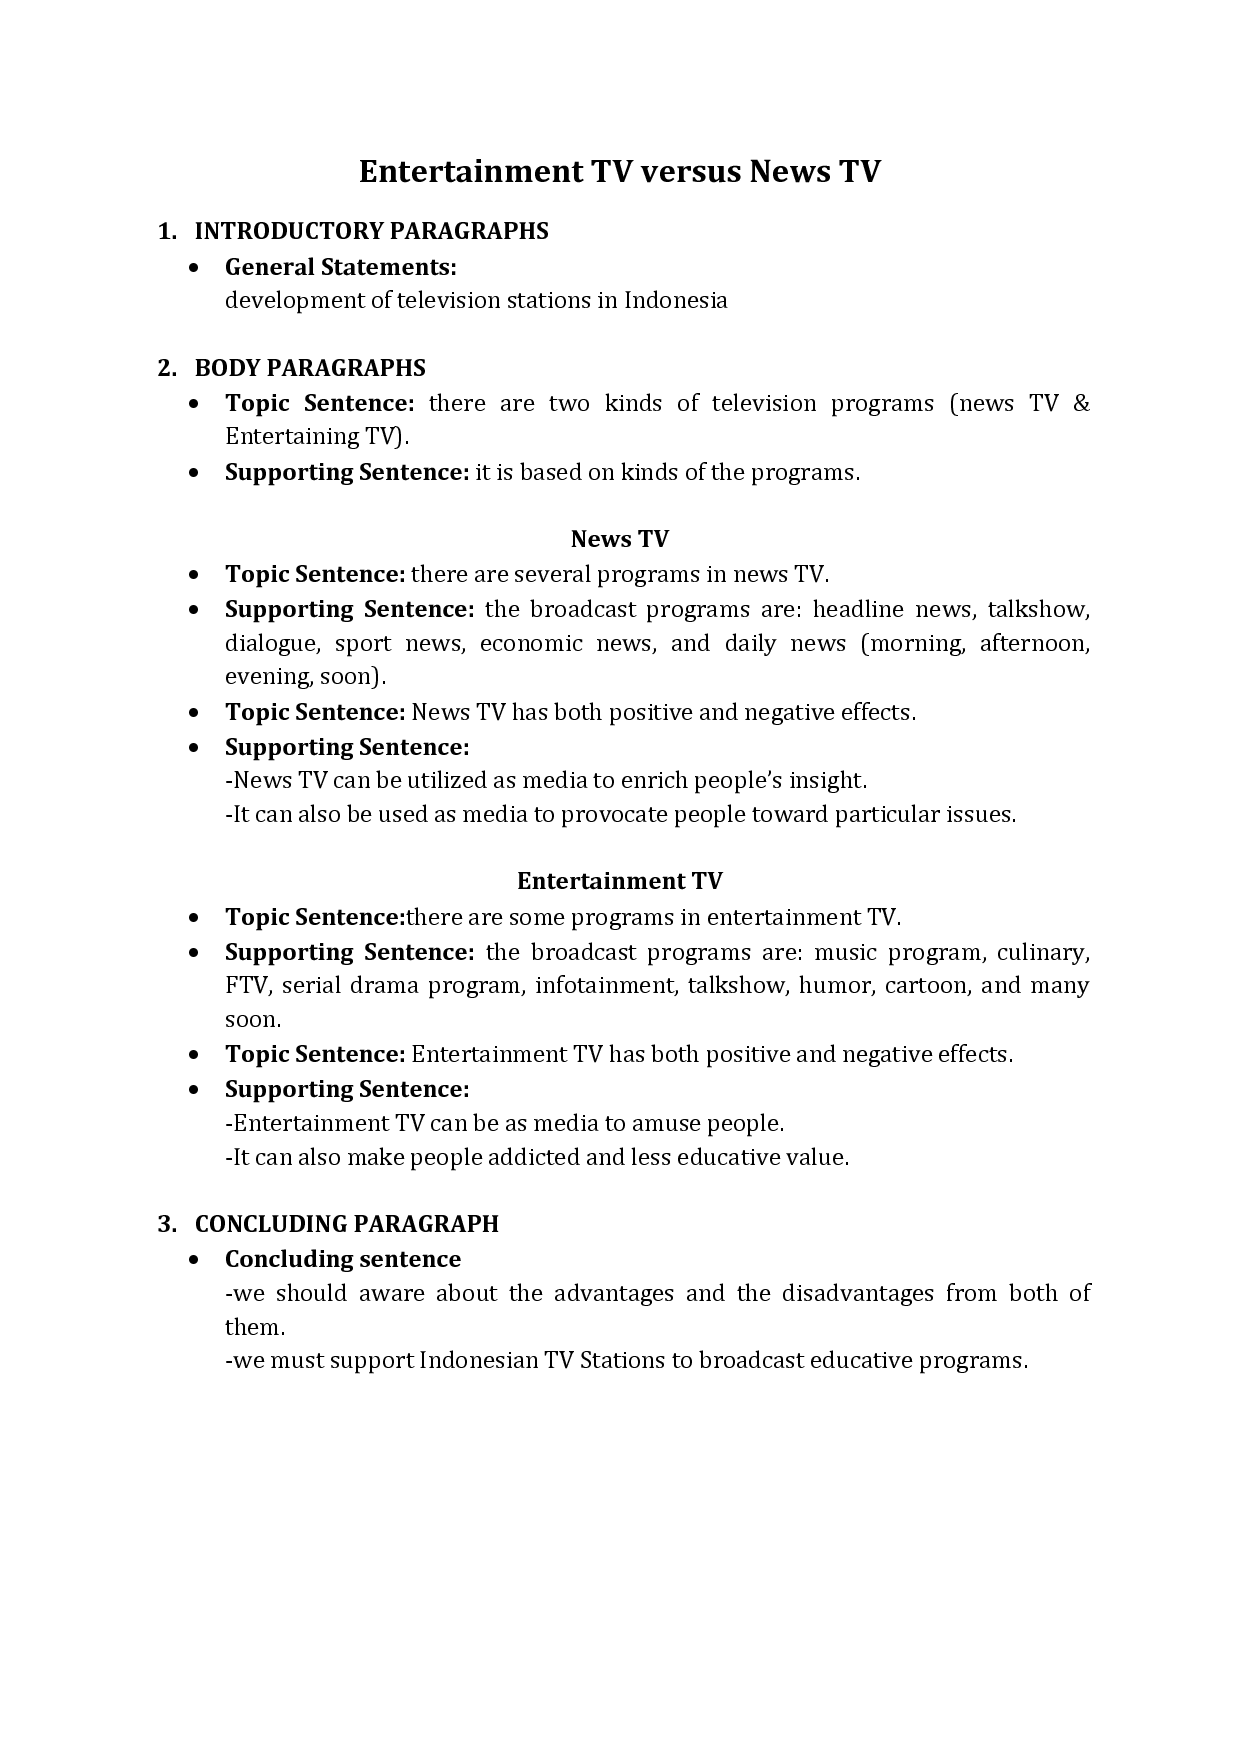 004 Essay Example College Outline Good English Essays Examples Ukran Soochi Co Reddit Writing Format Student How To Write Applic About Sports Apply Texas Topic Uc Striking Heading Template Pdf Research Paper Full